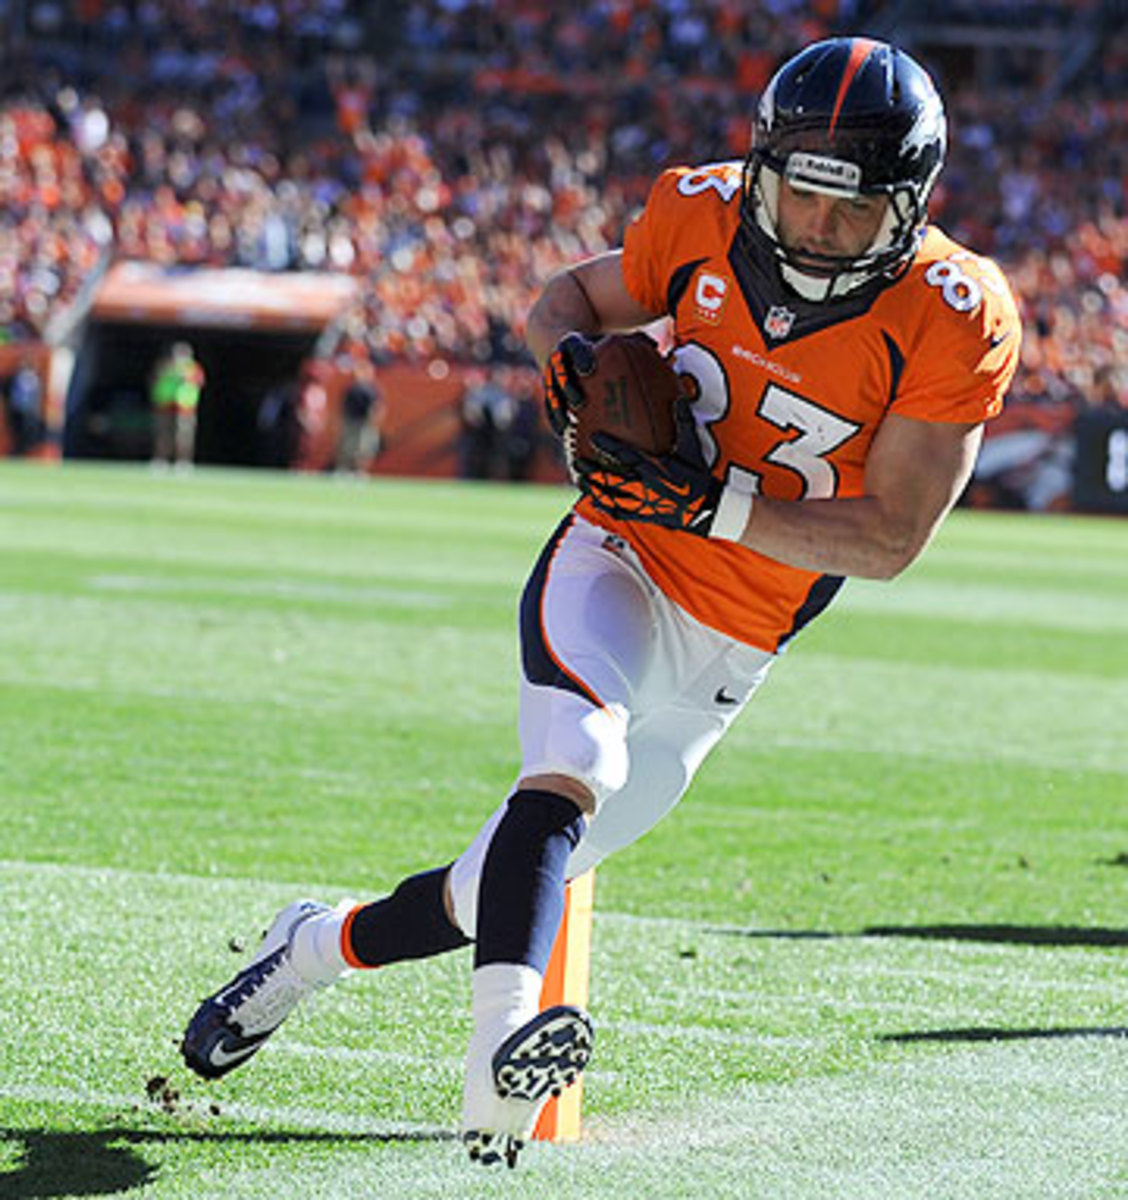 If healthy enough to play, Wes Welker could have a field day against his former team Sunday night. (Tim Rasmussen/Getty Images)